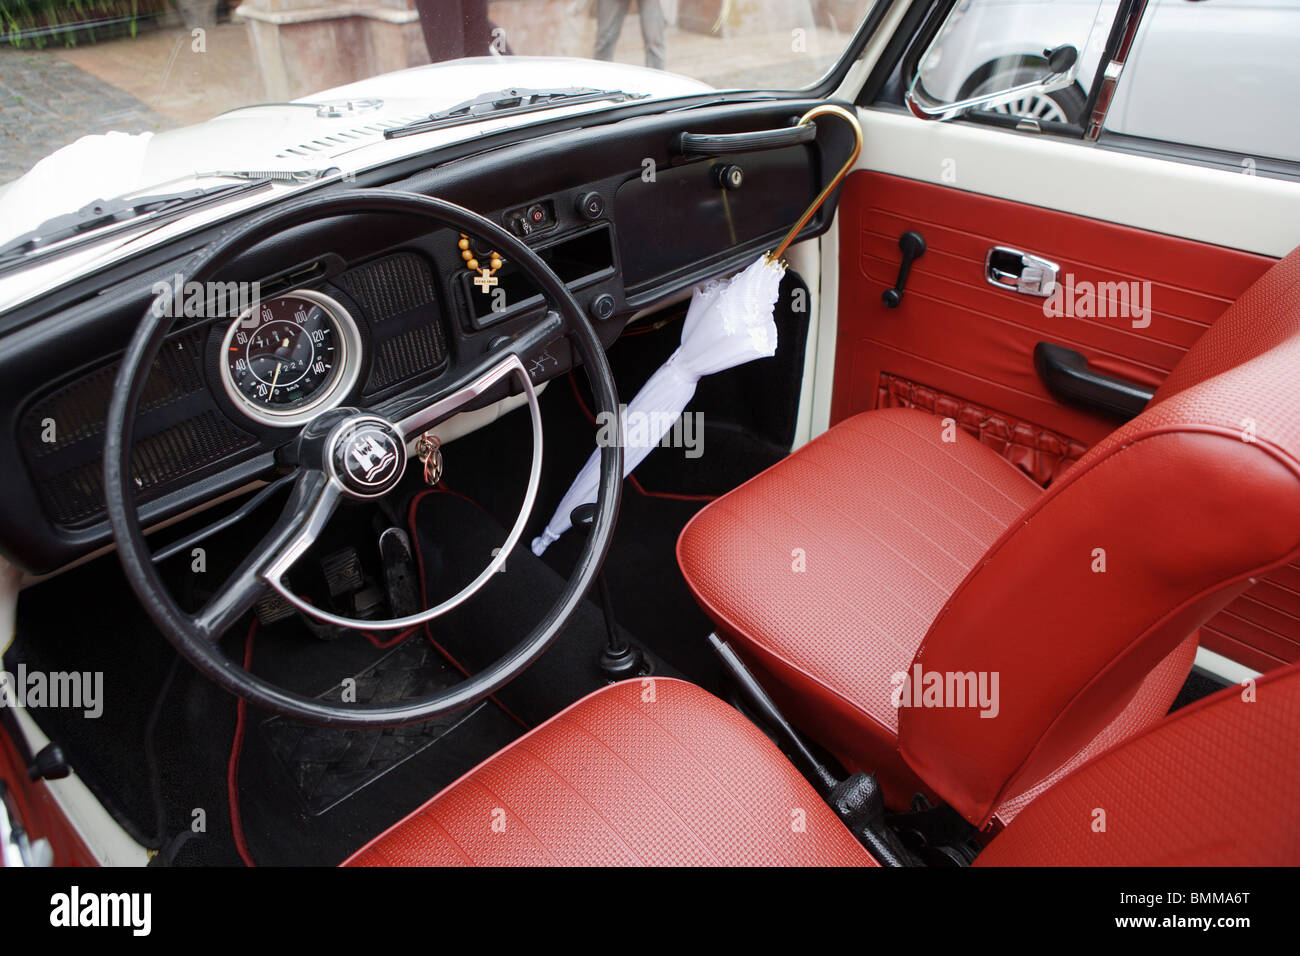 old car volkswagen beetle interior vintage collection spot stock photo royalty free image. Black Bedroom Furniture Sets. Home Design Ideas